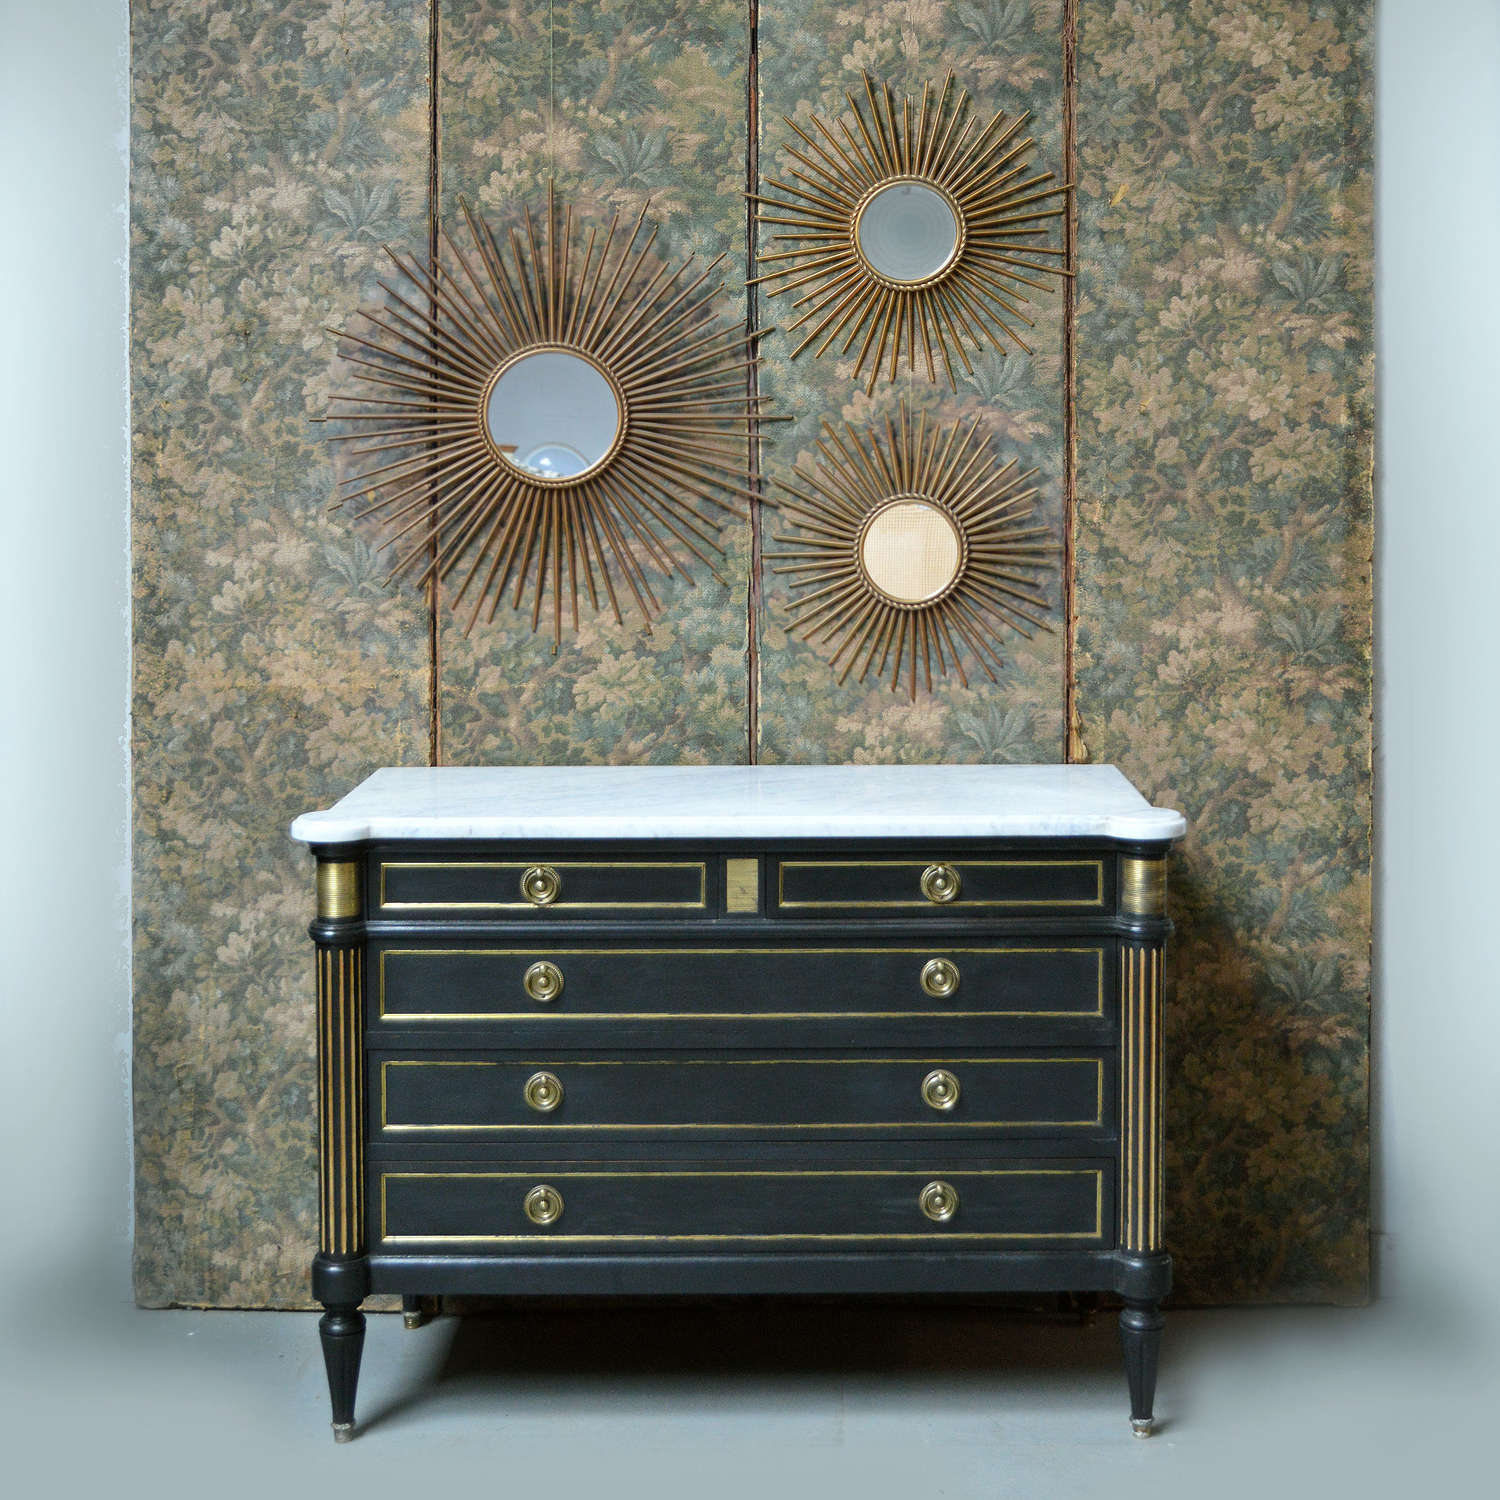 Louis XVI style marble top commode